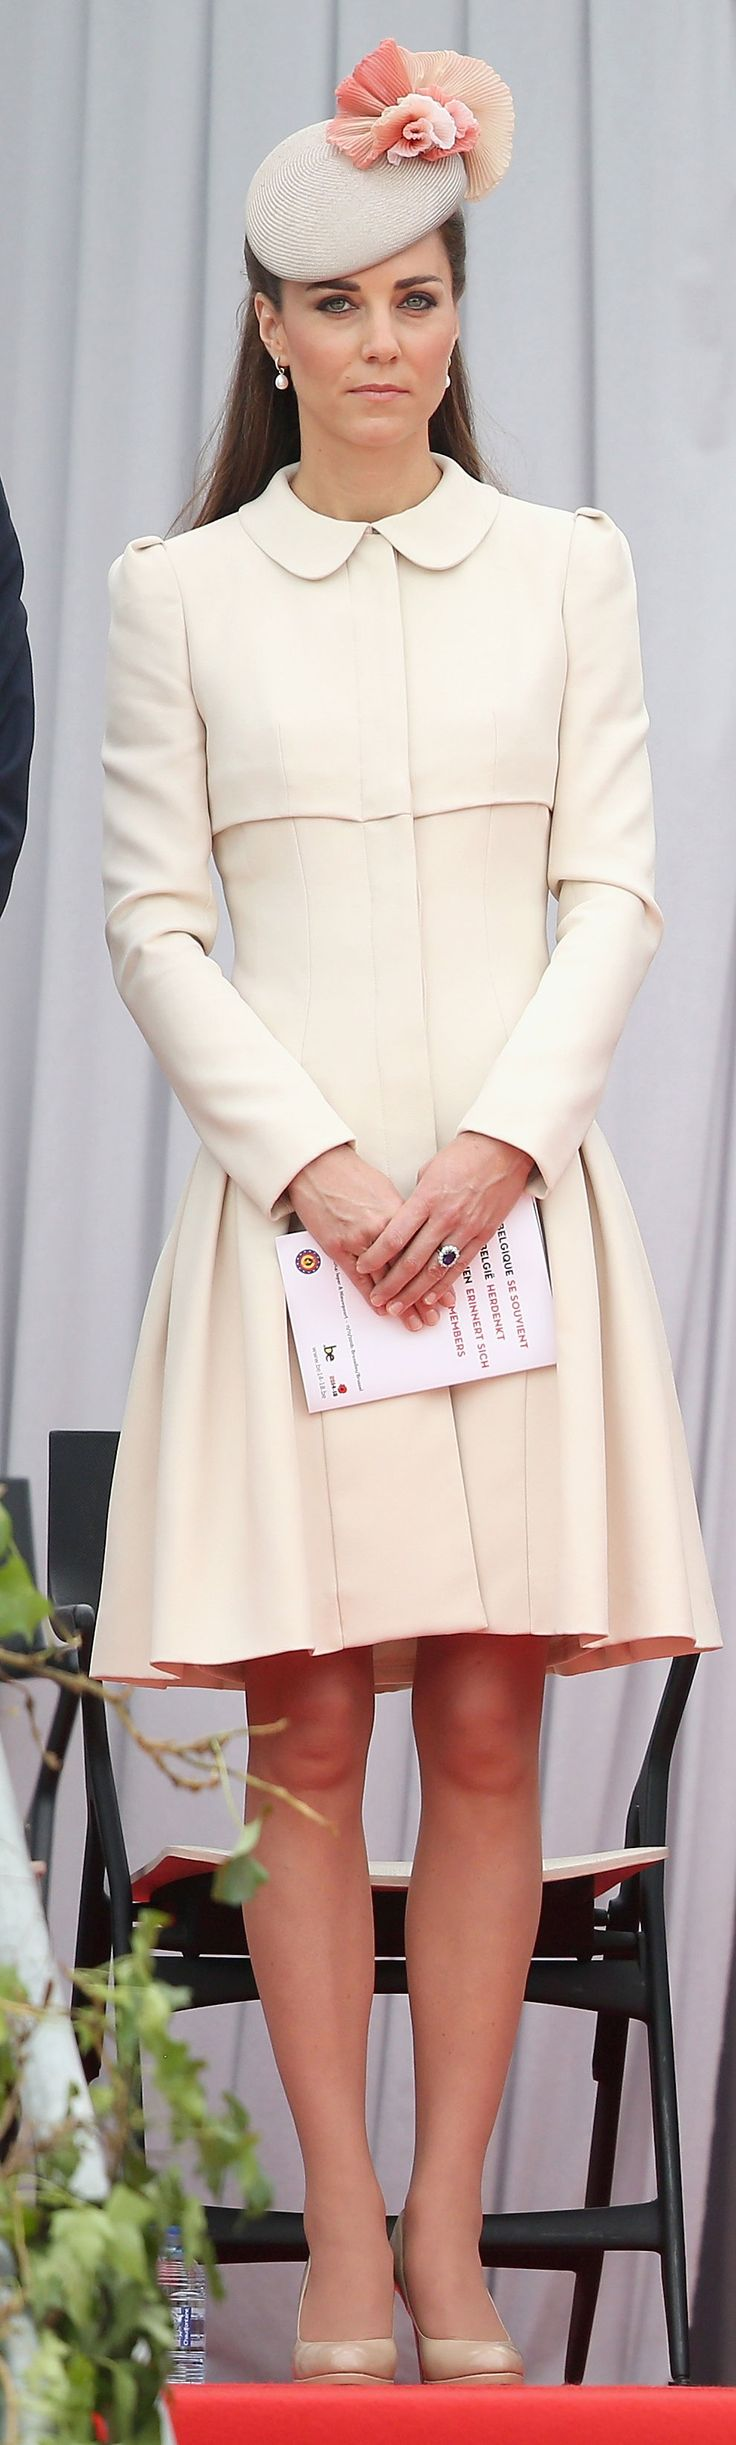 Kate Middleton in white Alexander McQueen dress